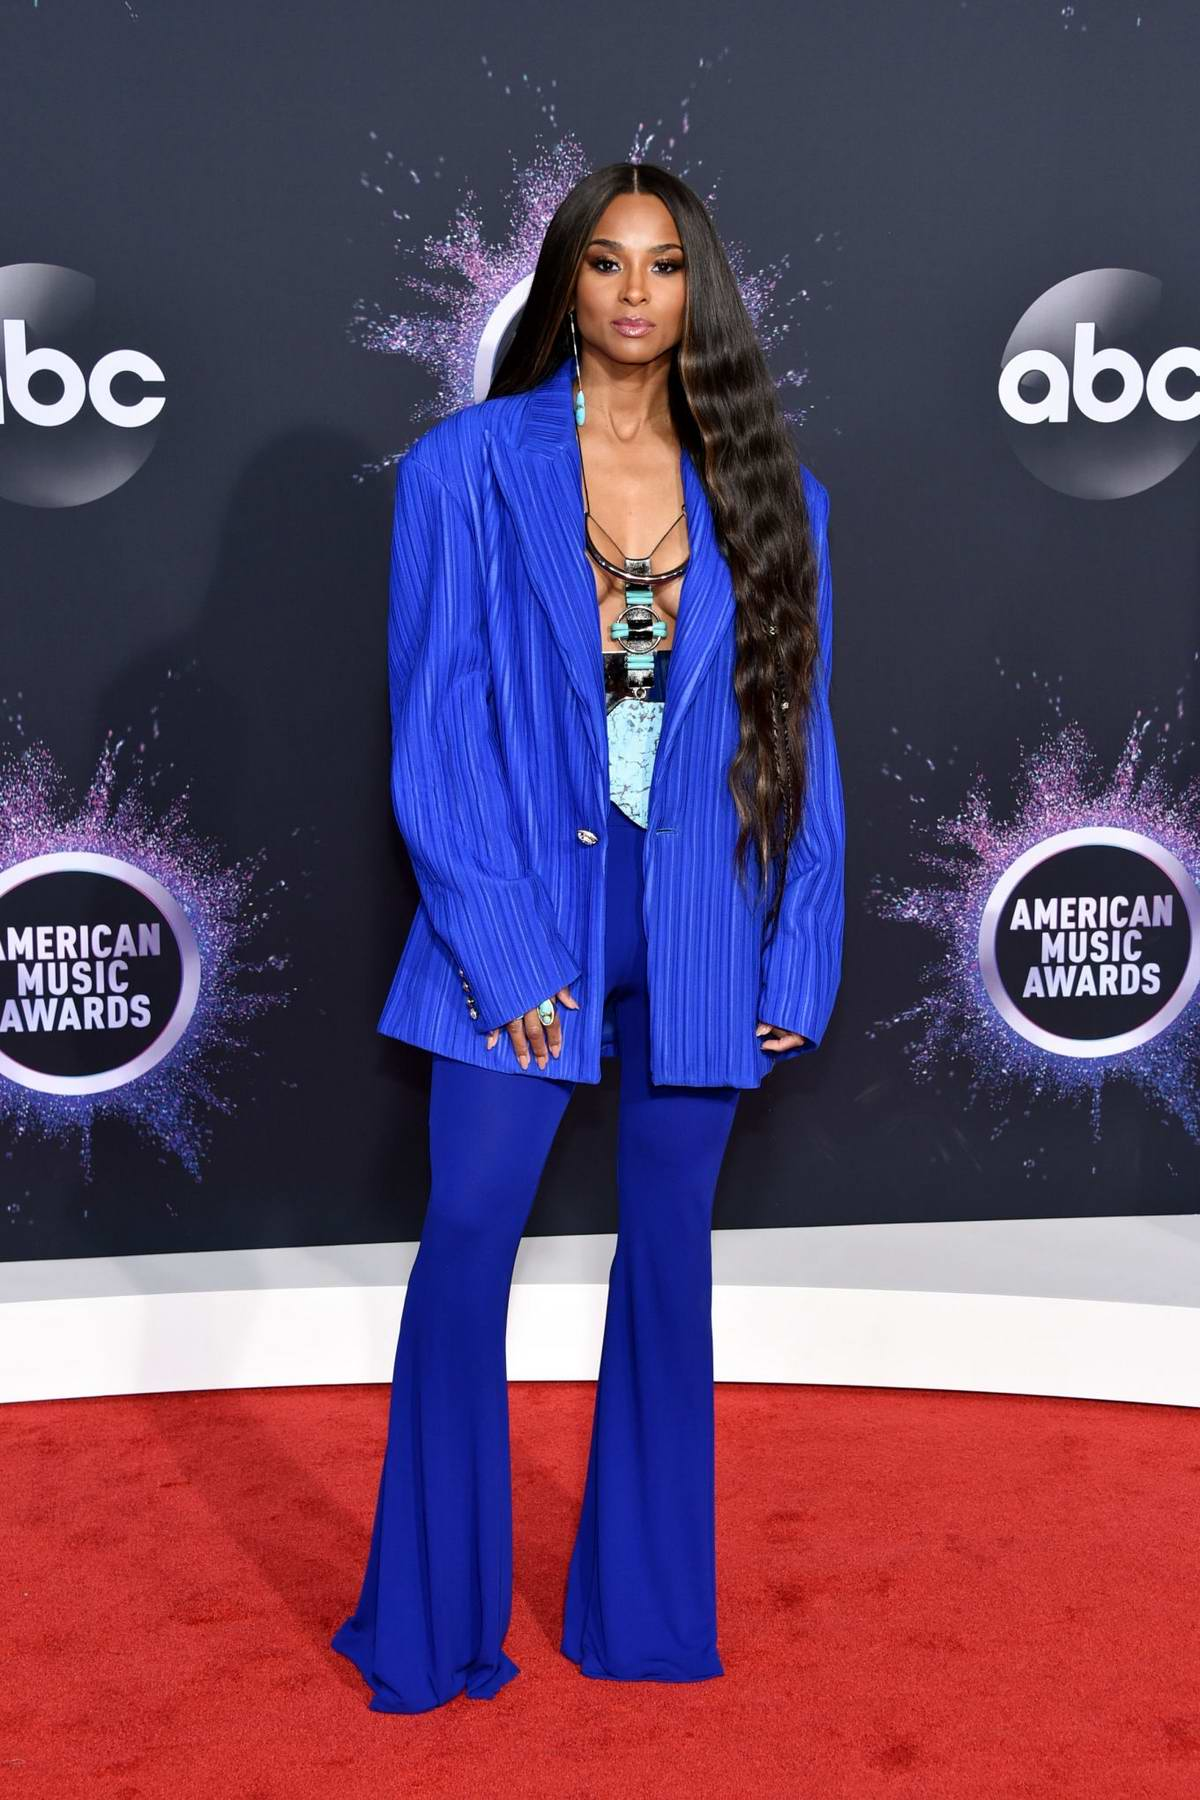 Ciara attends the 2019 American Music Awards at Microsoft Theater in Los Angeles